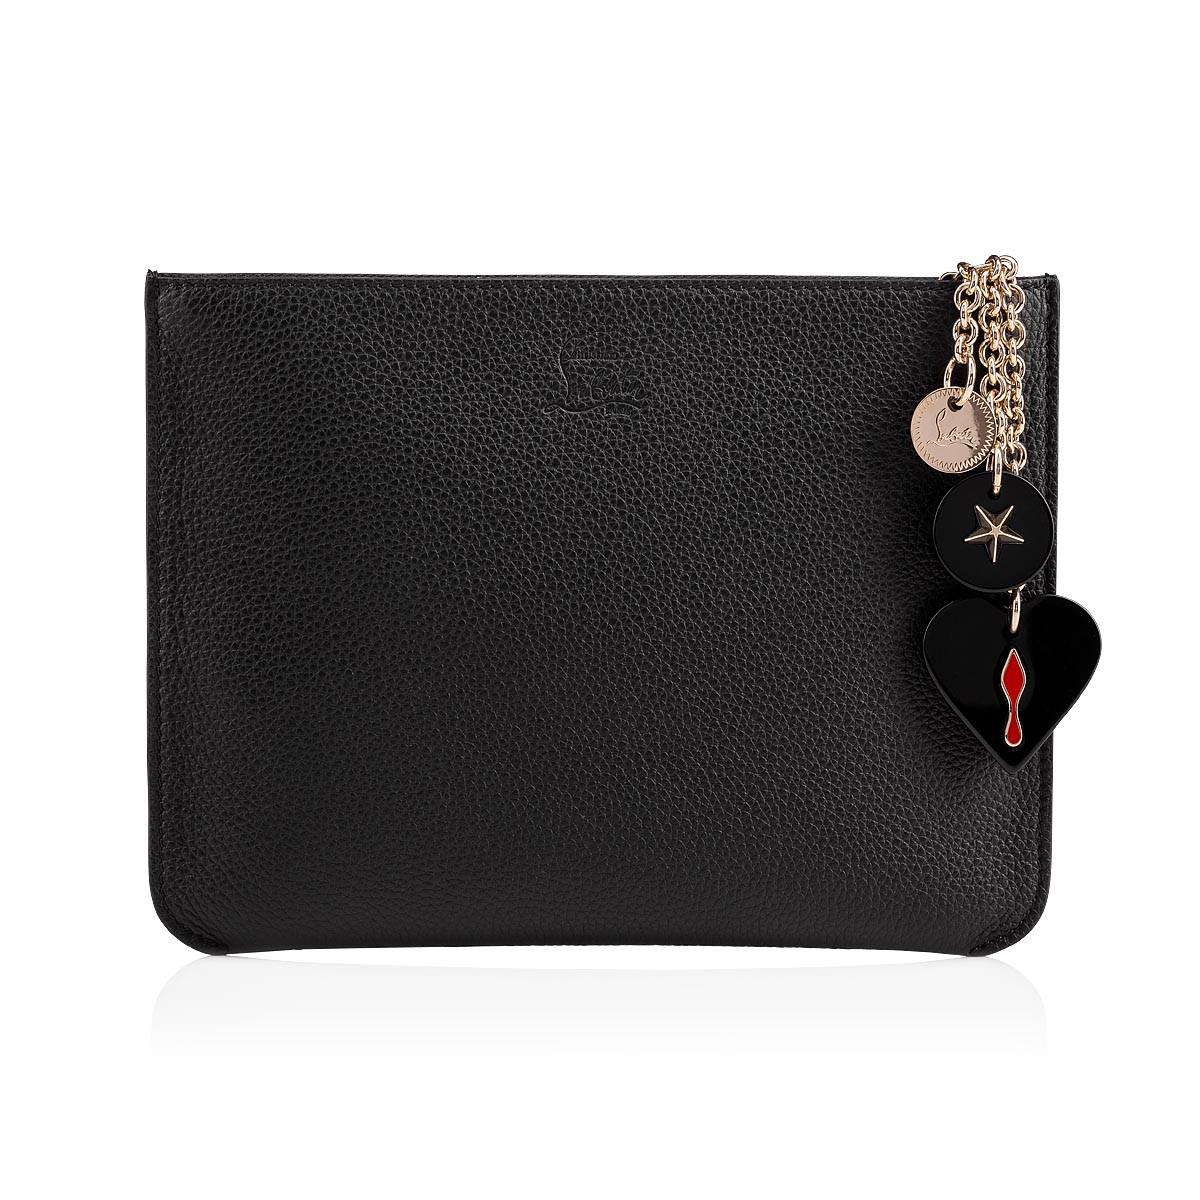 9260d200279 Christian Louboutin Loubicute Black Leather Pouch in Black - Save 9 ...